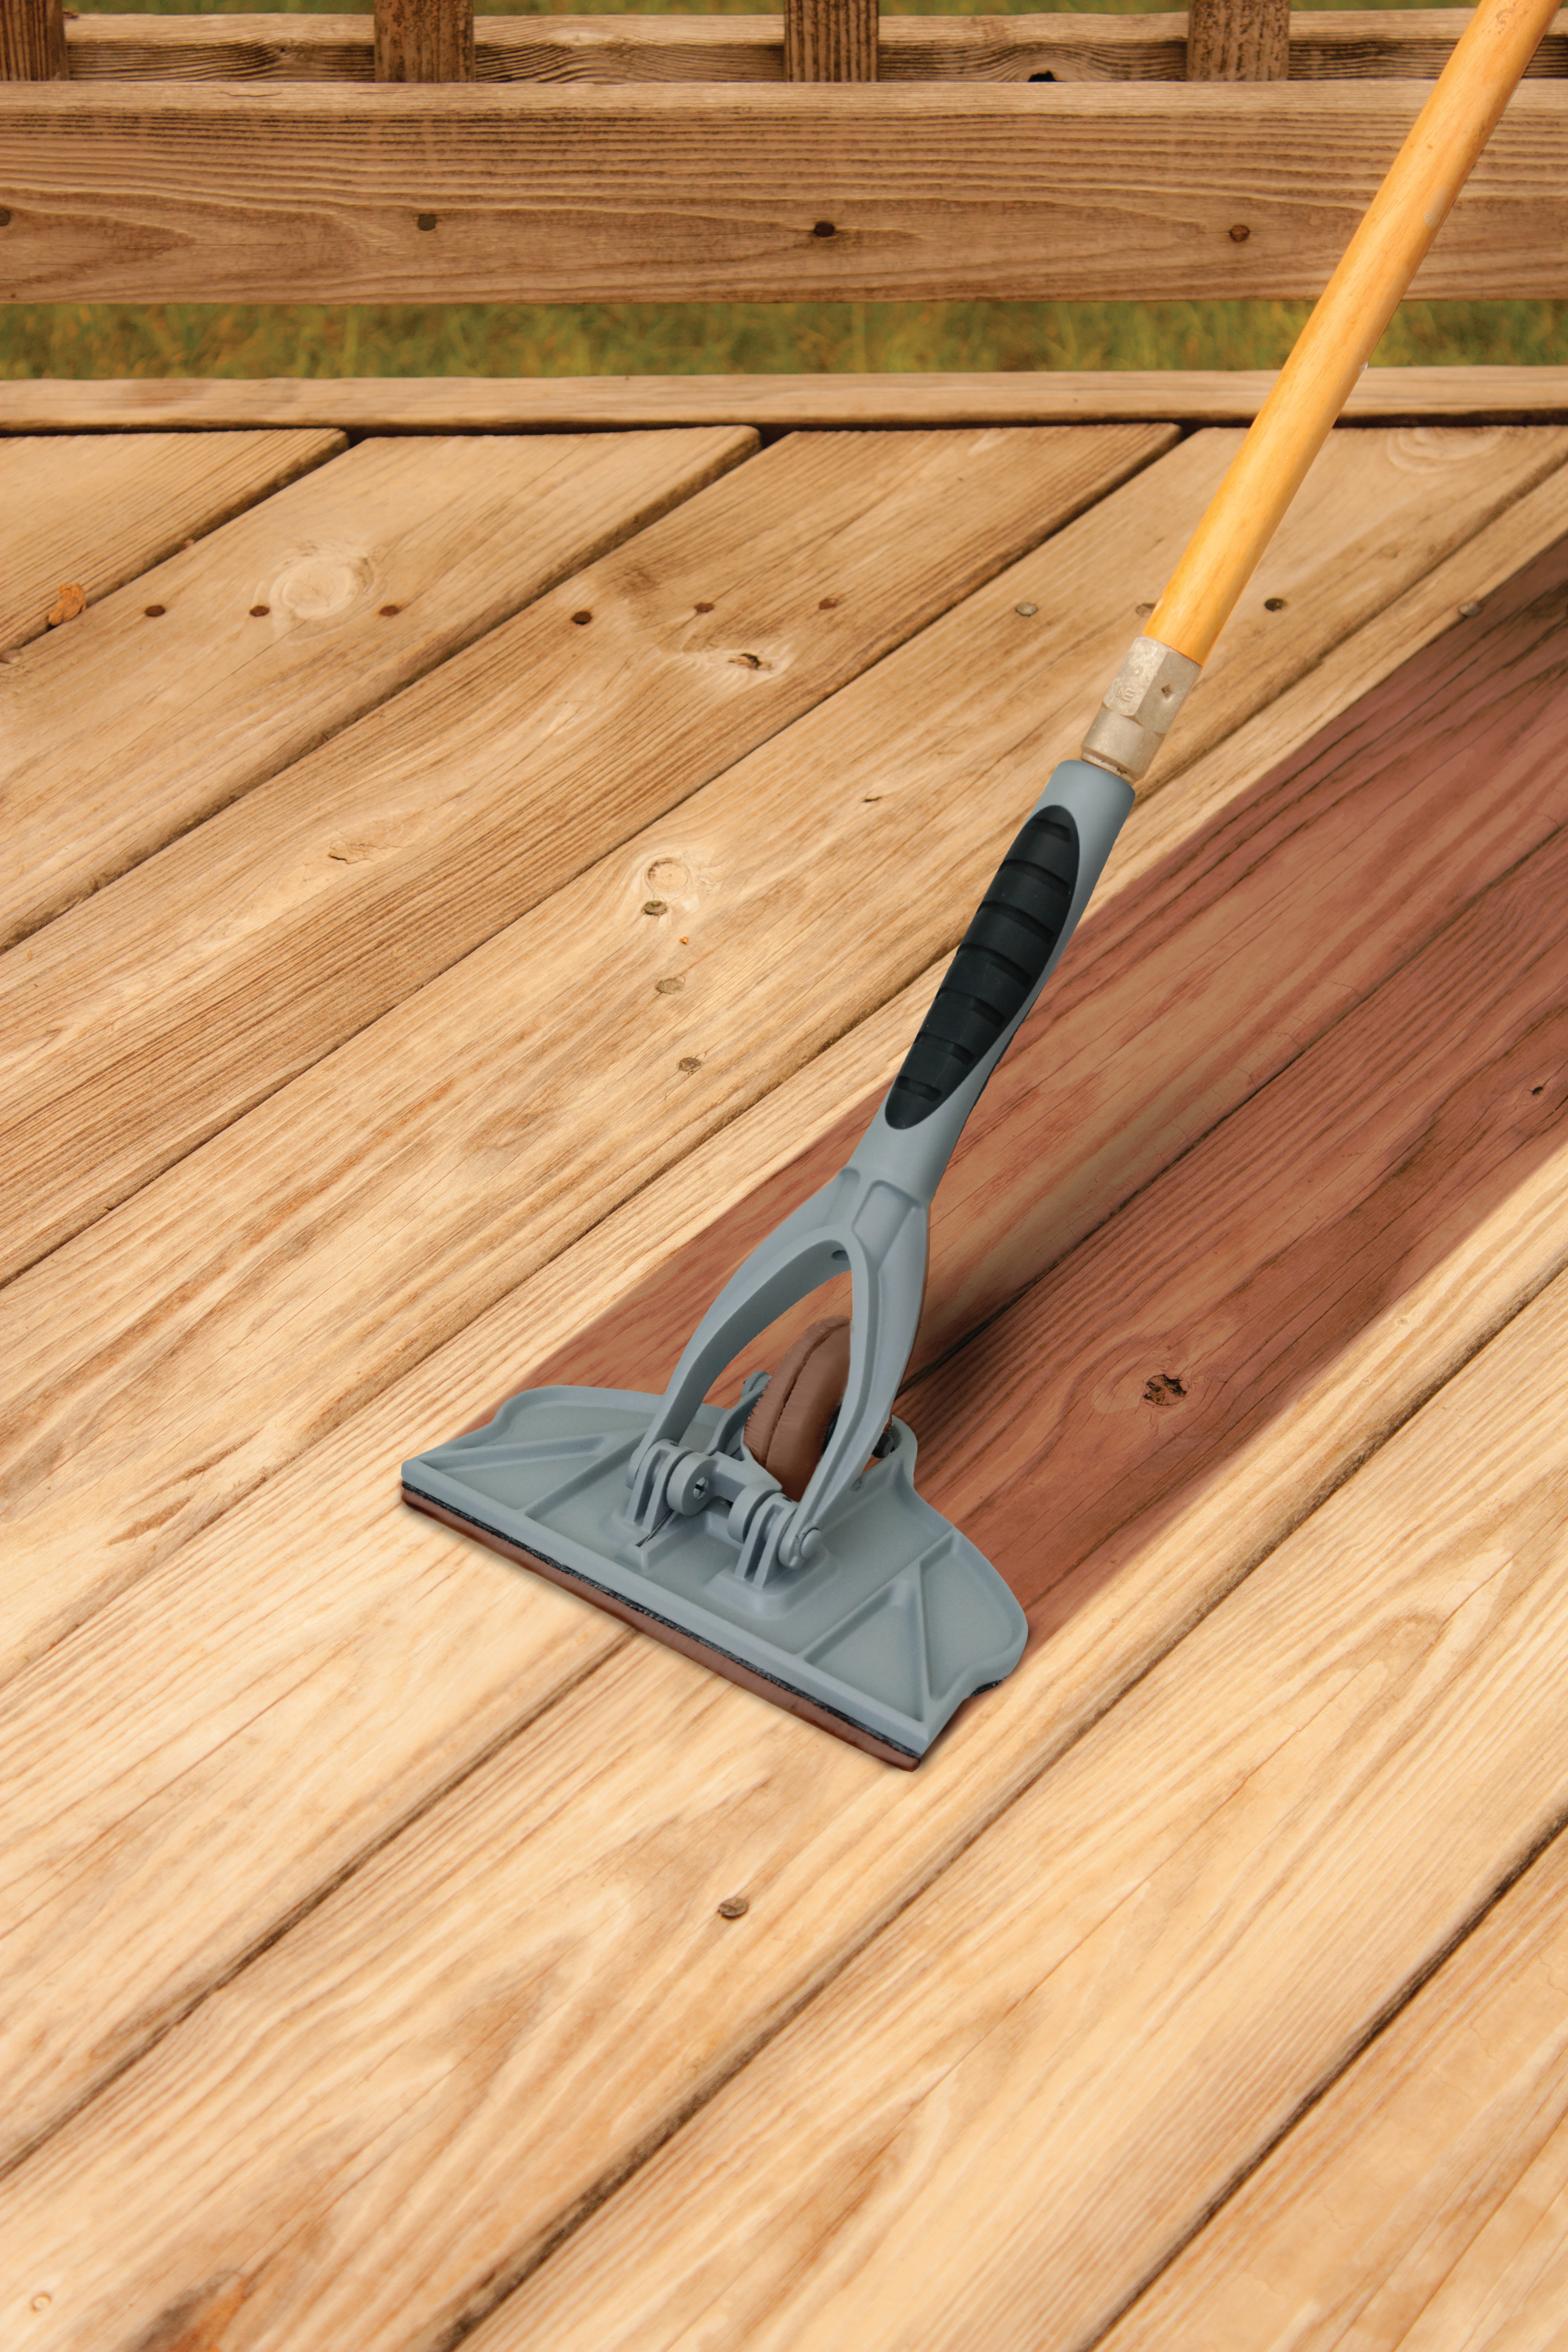 Wood Deck Decking Wood Stain Deck Brush For Stain Lovable Decking throughout proportions 2848 X 4272